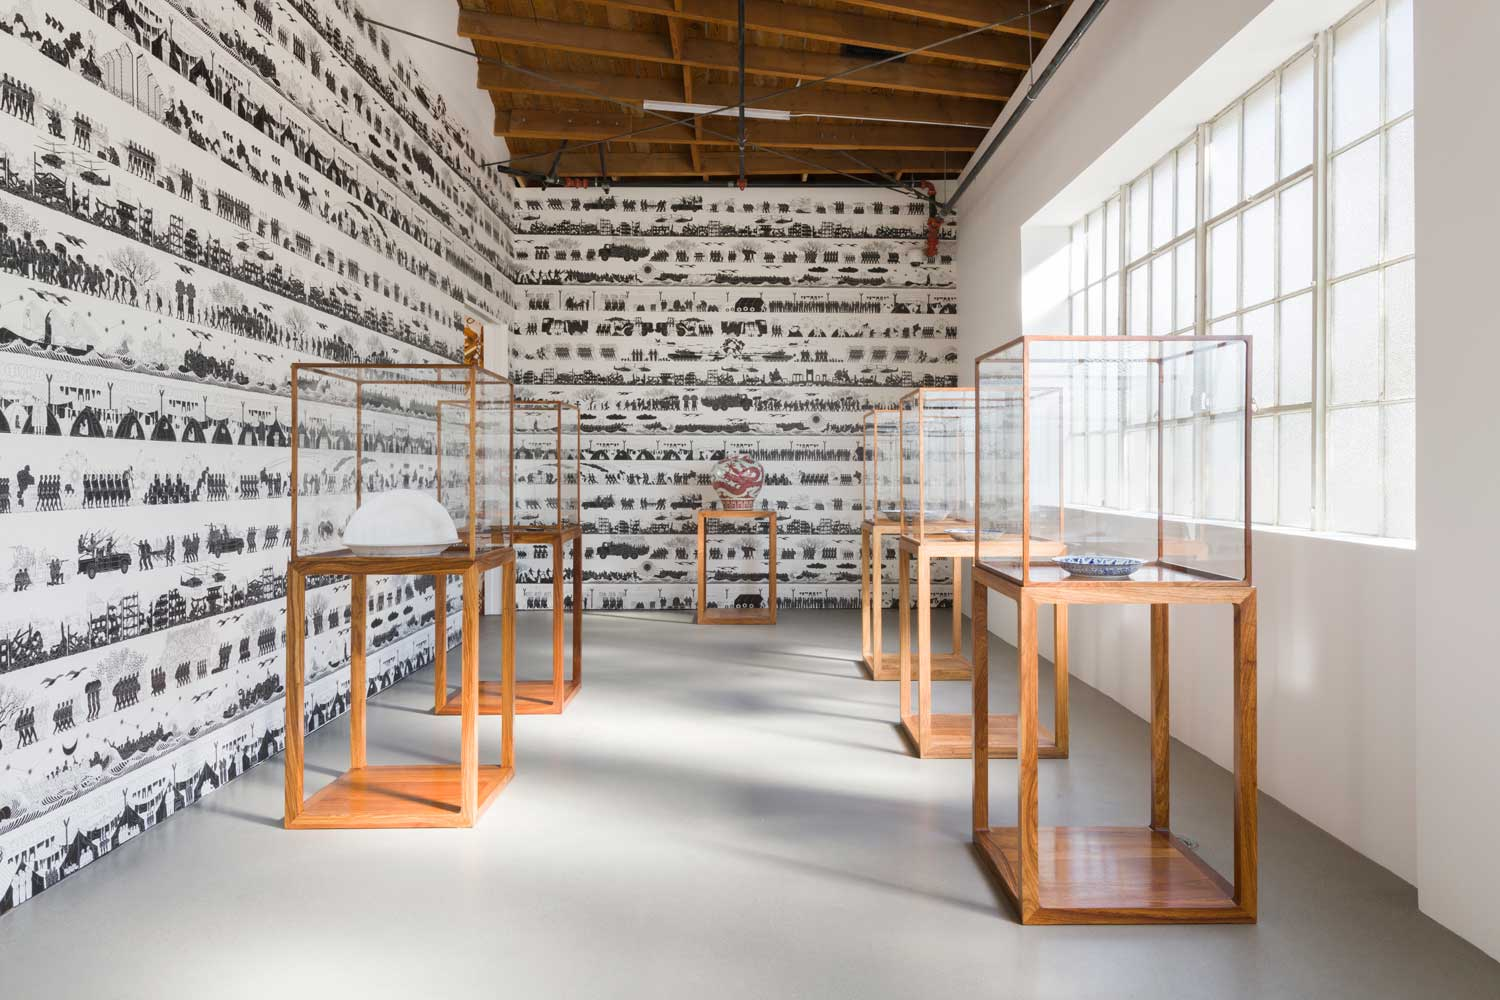 Installation view of Cao Humanity Photo by Jeff Mclane